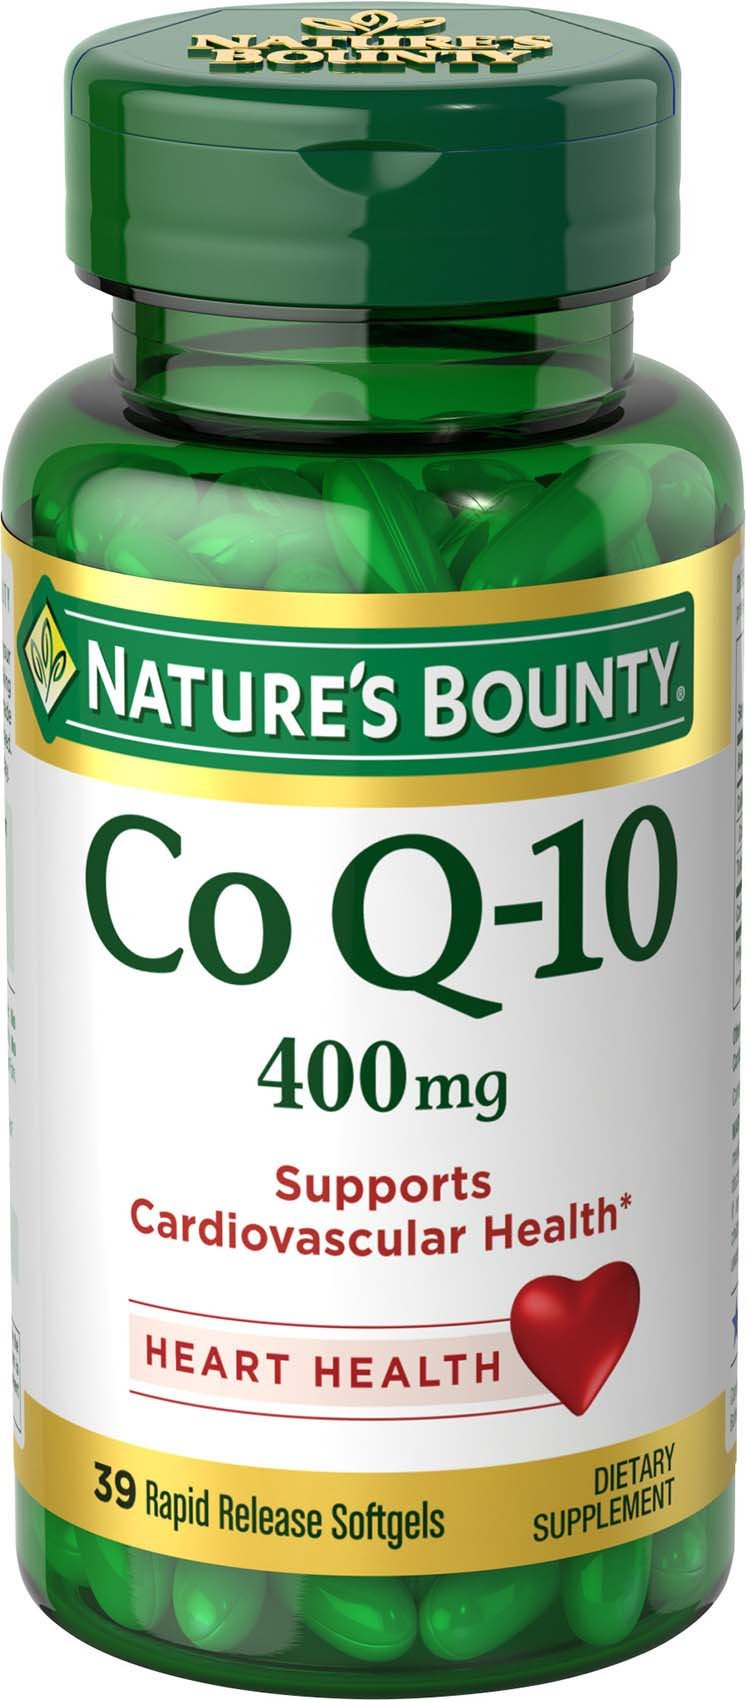 Nature's Bounty Cardio Q10, Co Q-10 400 mg Softgels 39 ea